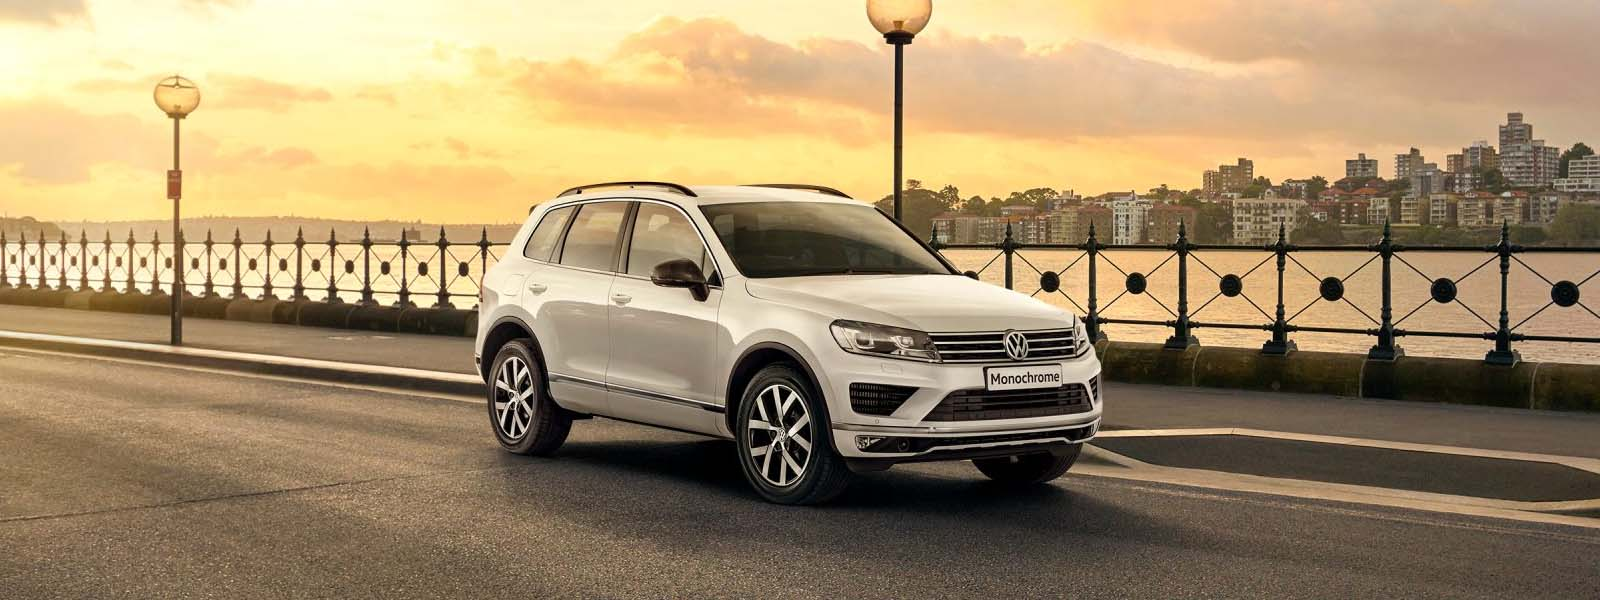 starting plusher r trim with sale touareg in new launch on comes to and from applies level entry britain offered are three levels autocar news interieur for uk price volkswagen line car variant which the prices at cars sel